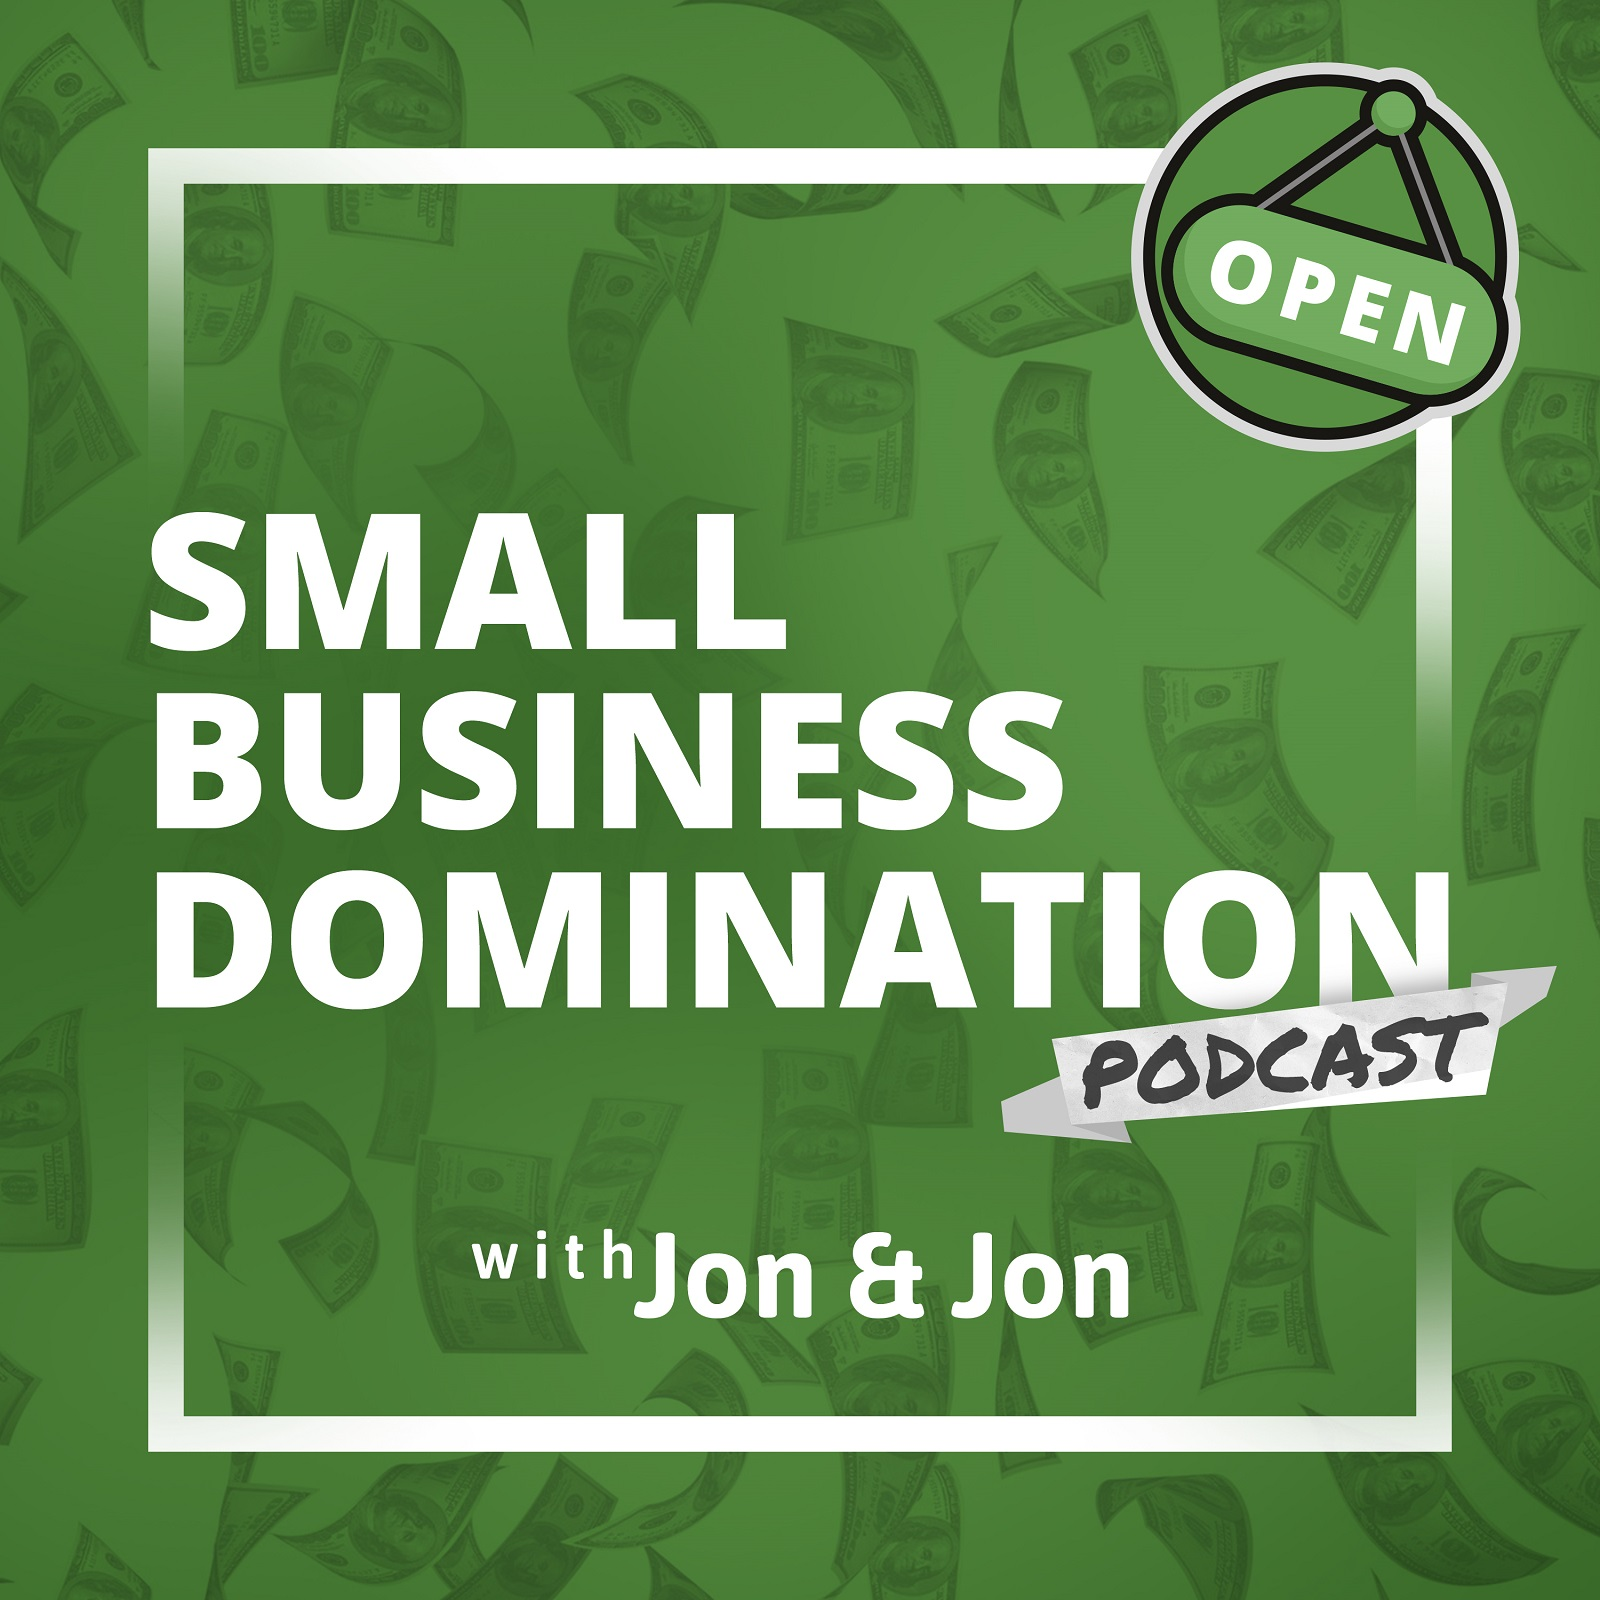 Small-Business-Domination-Podcast